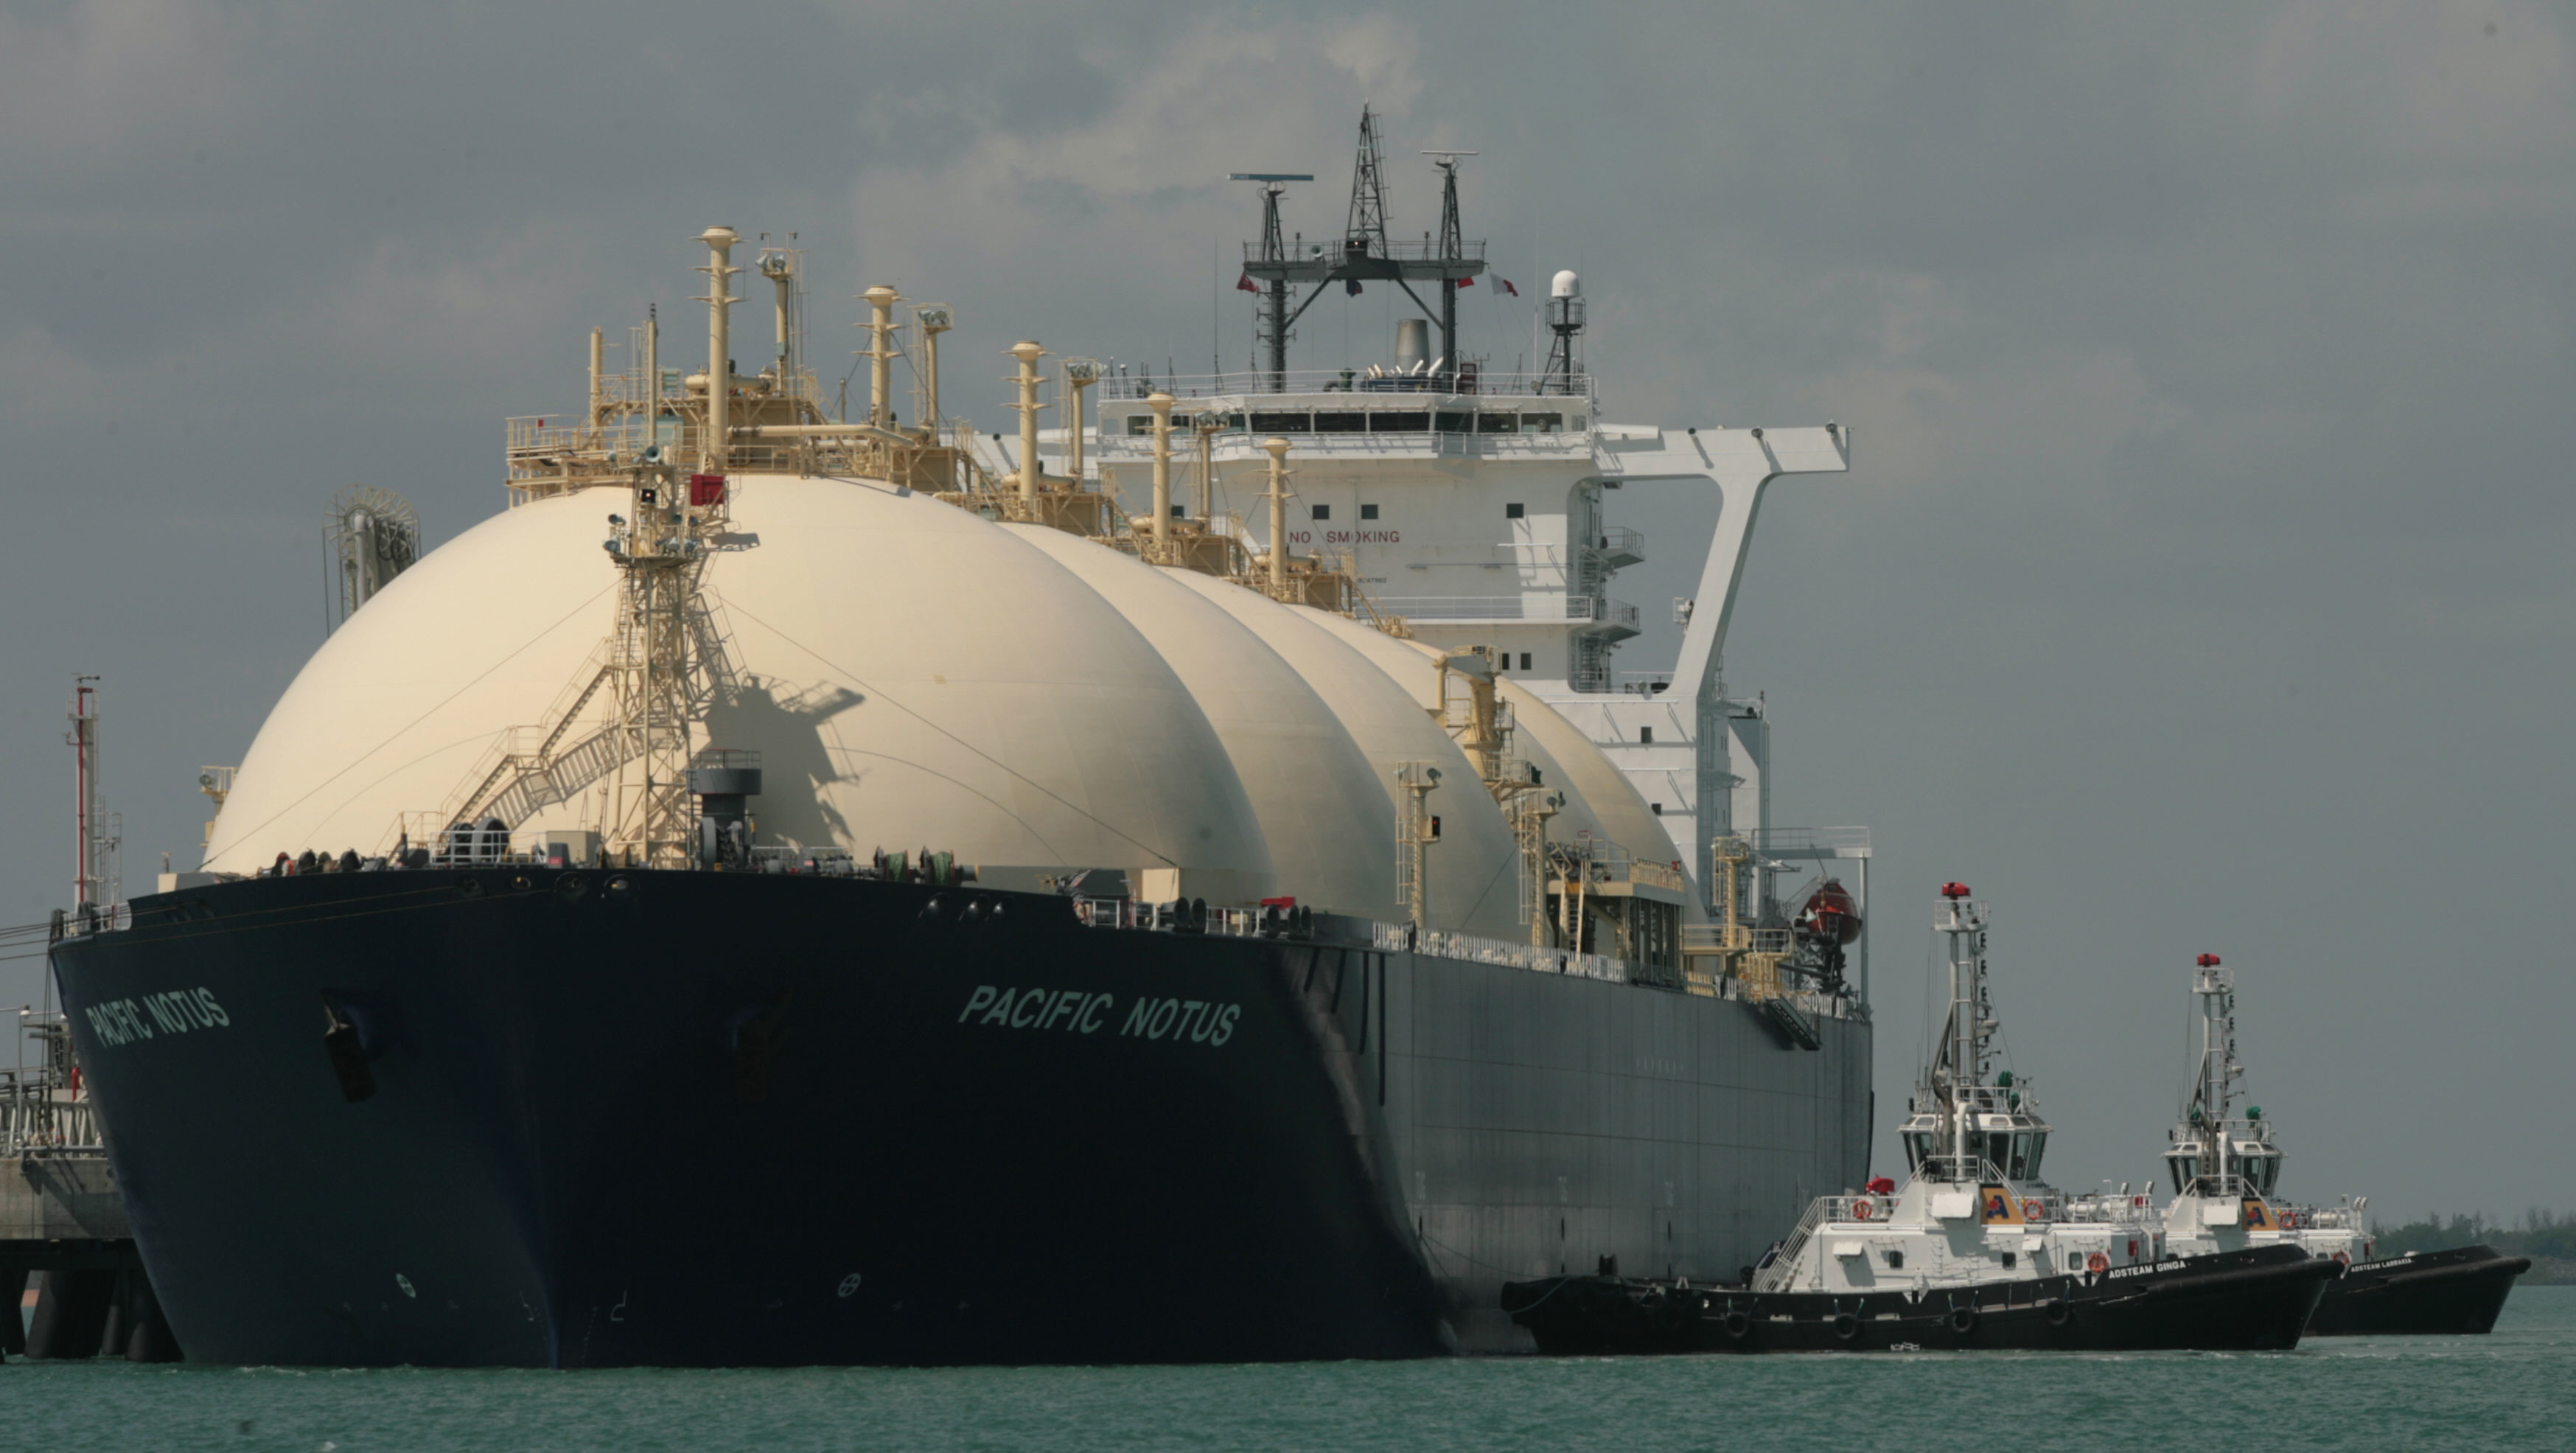 Missing out: Natural gas and Canada's exports